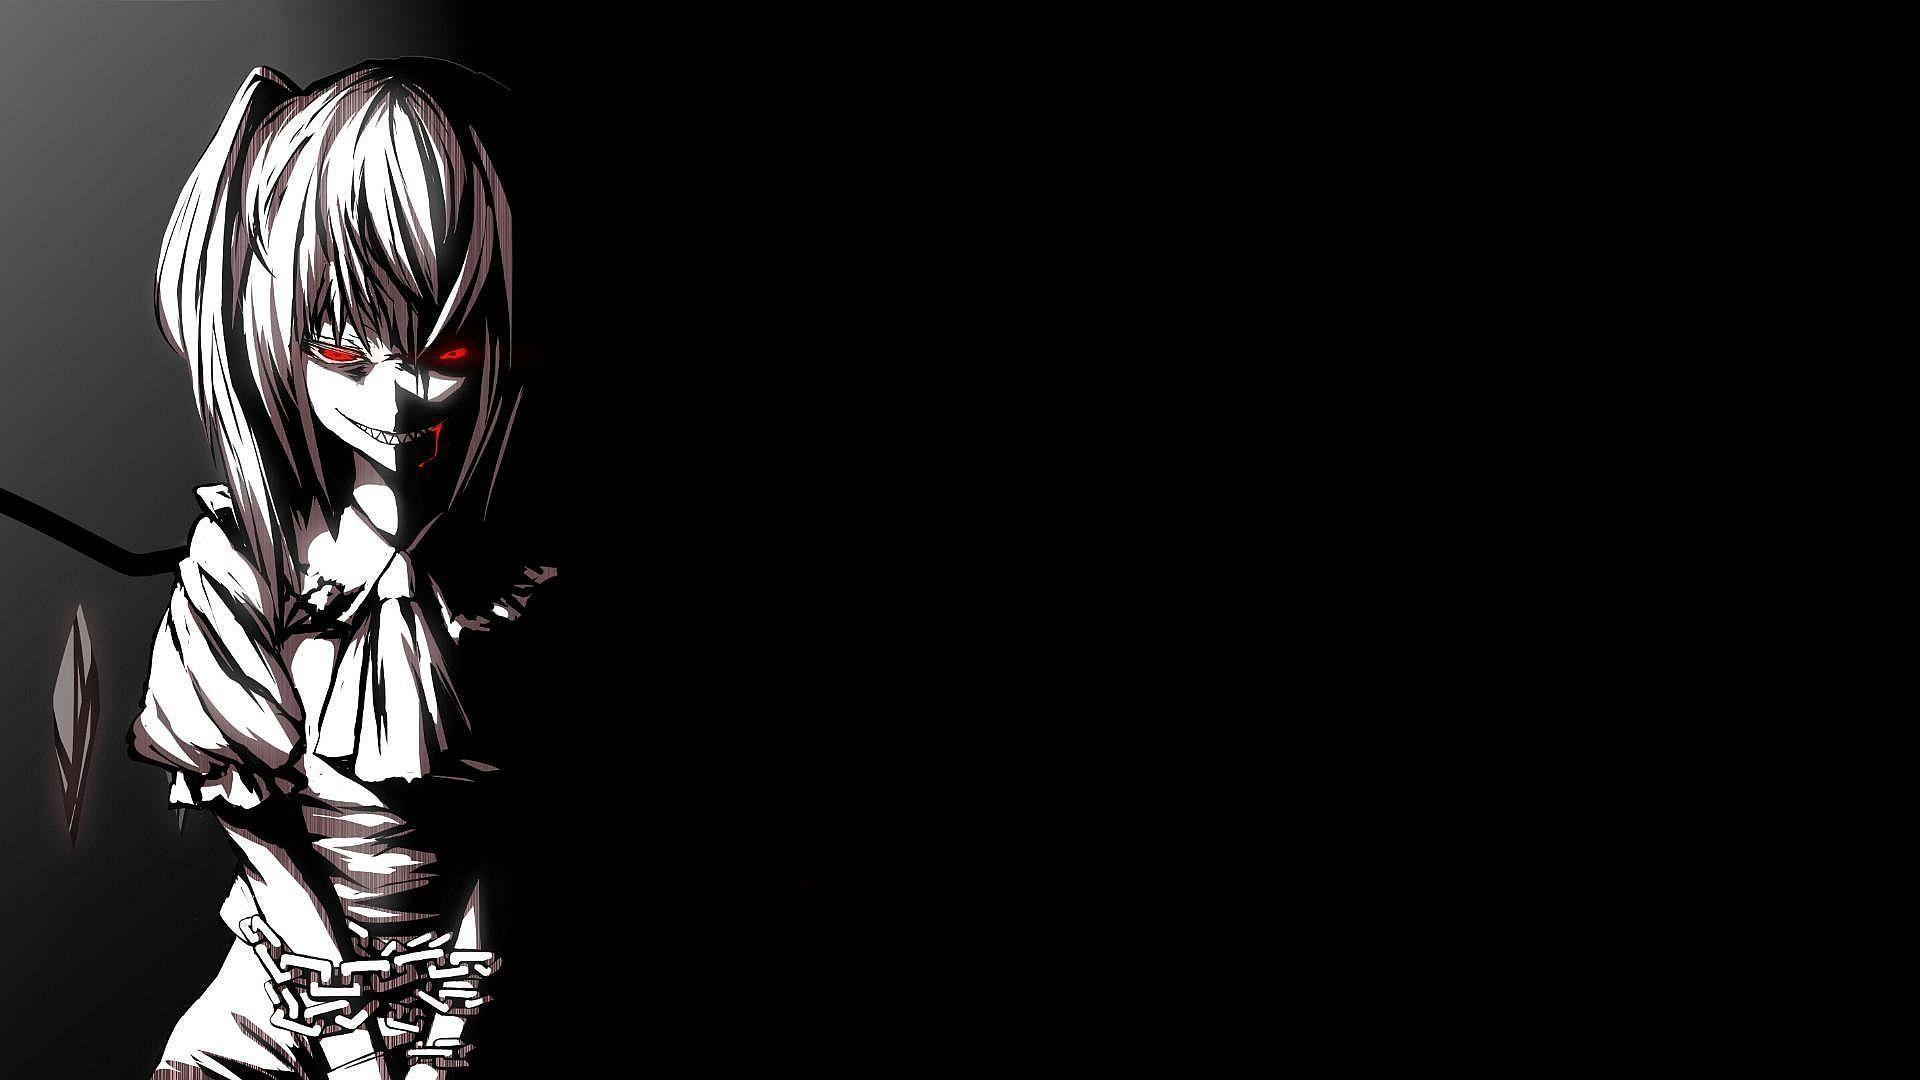 Dark Anime Wallpapers Top Free Dark Anime Backgrounds